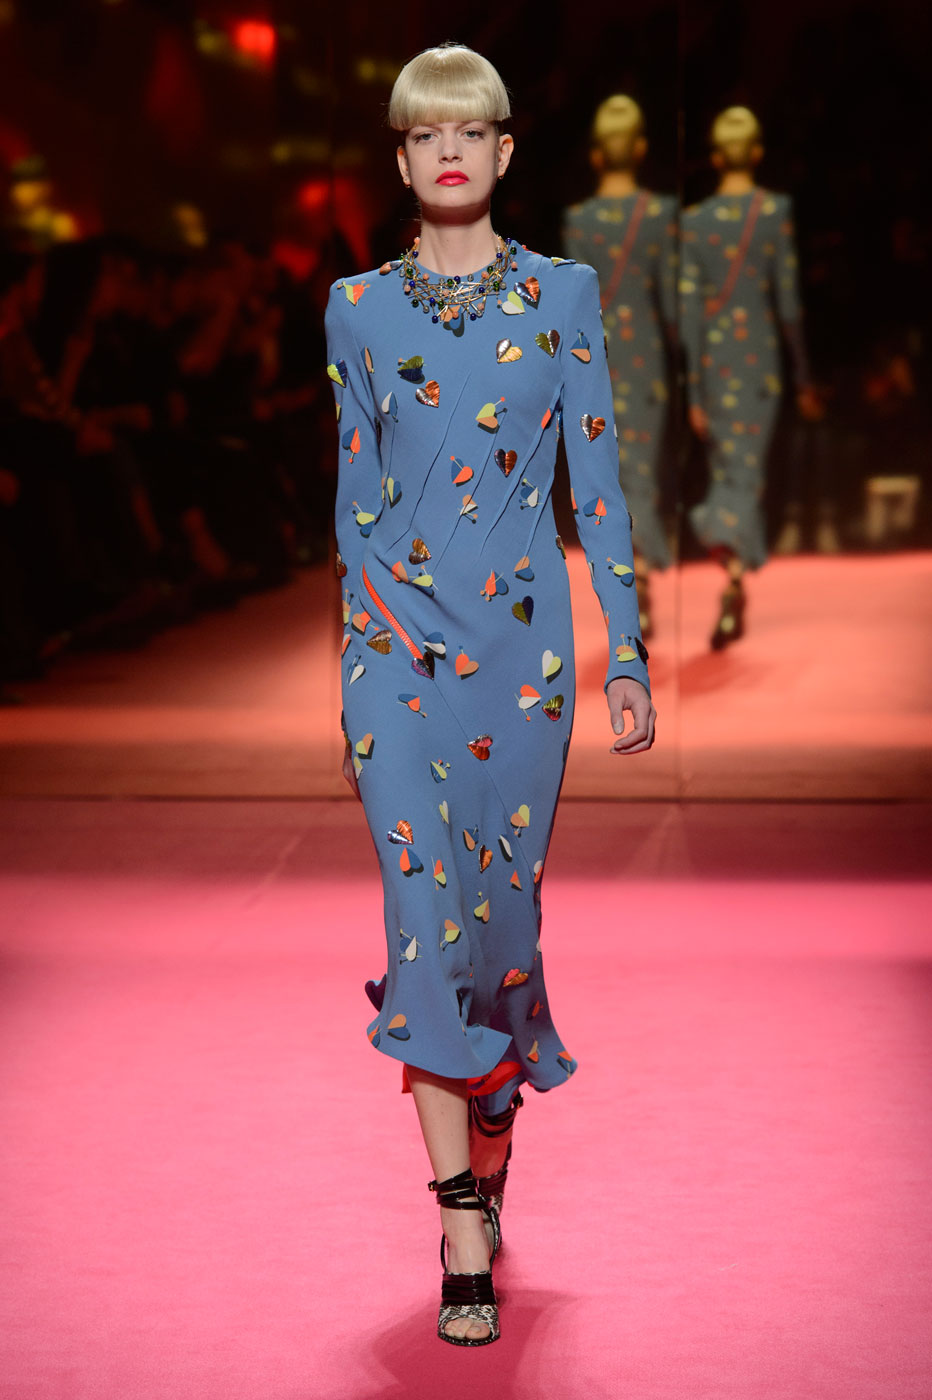 Schiaparelli-fashion-runway-show-haute-couture-paris-spring-summer-2015-the-impression-21